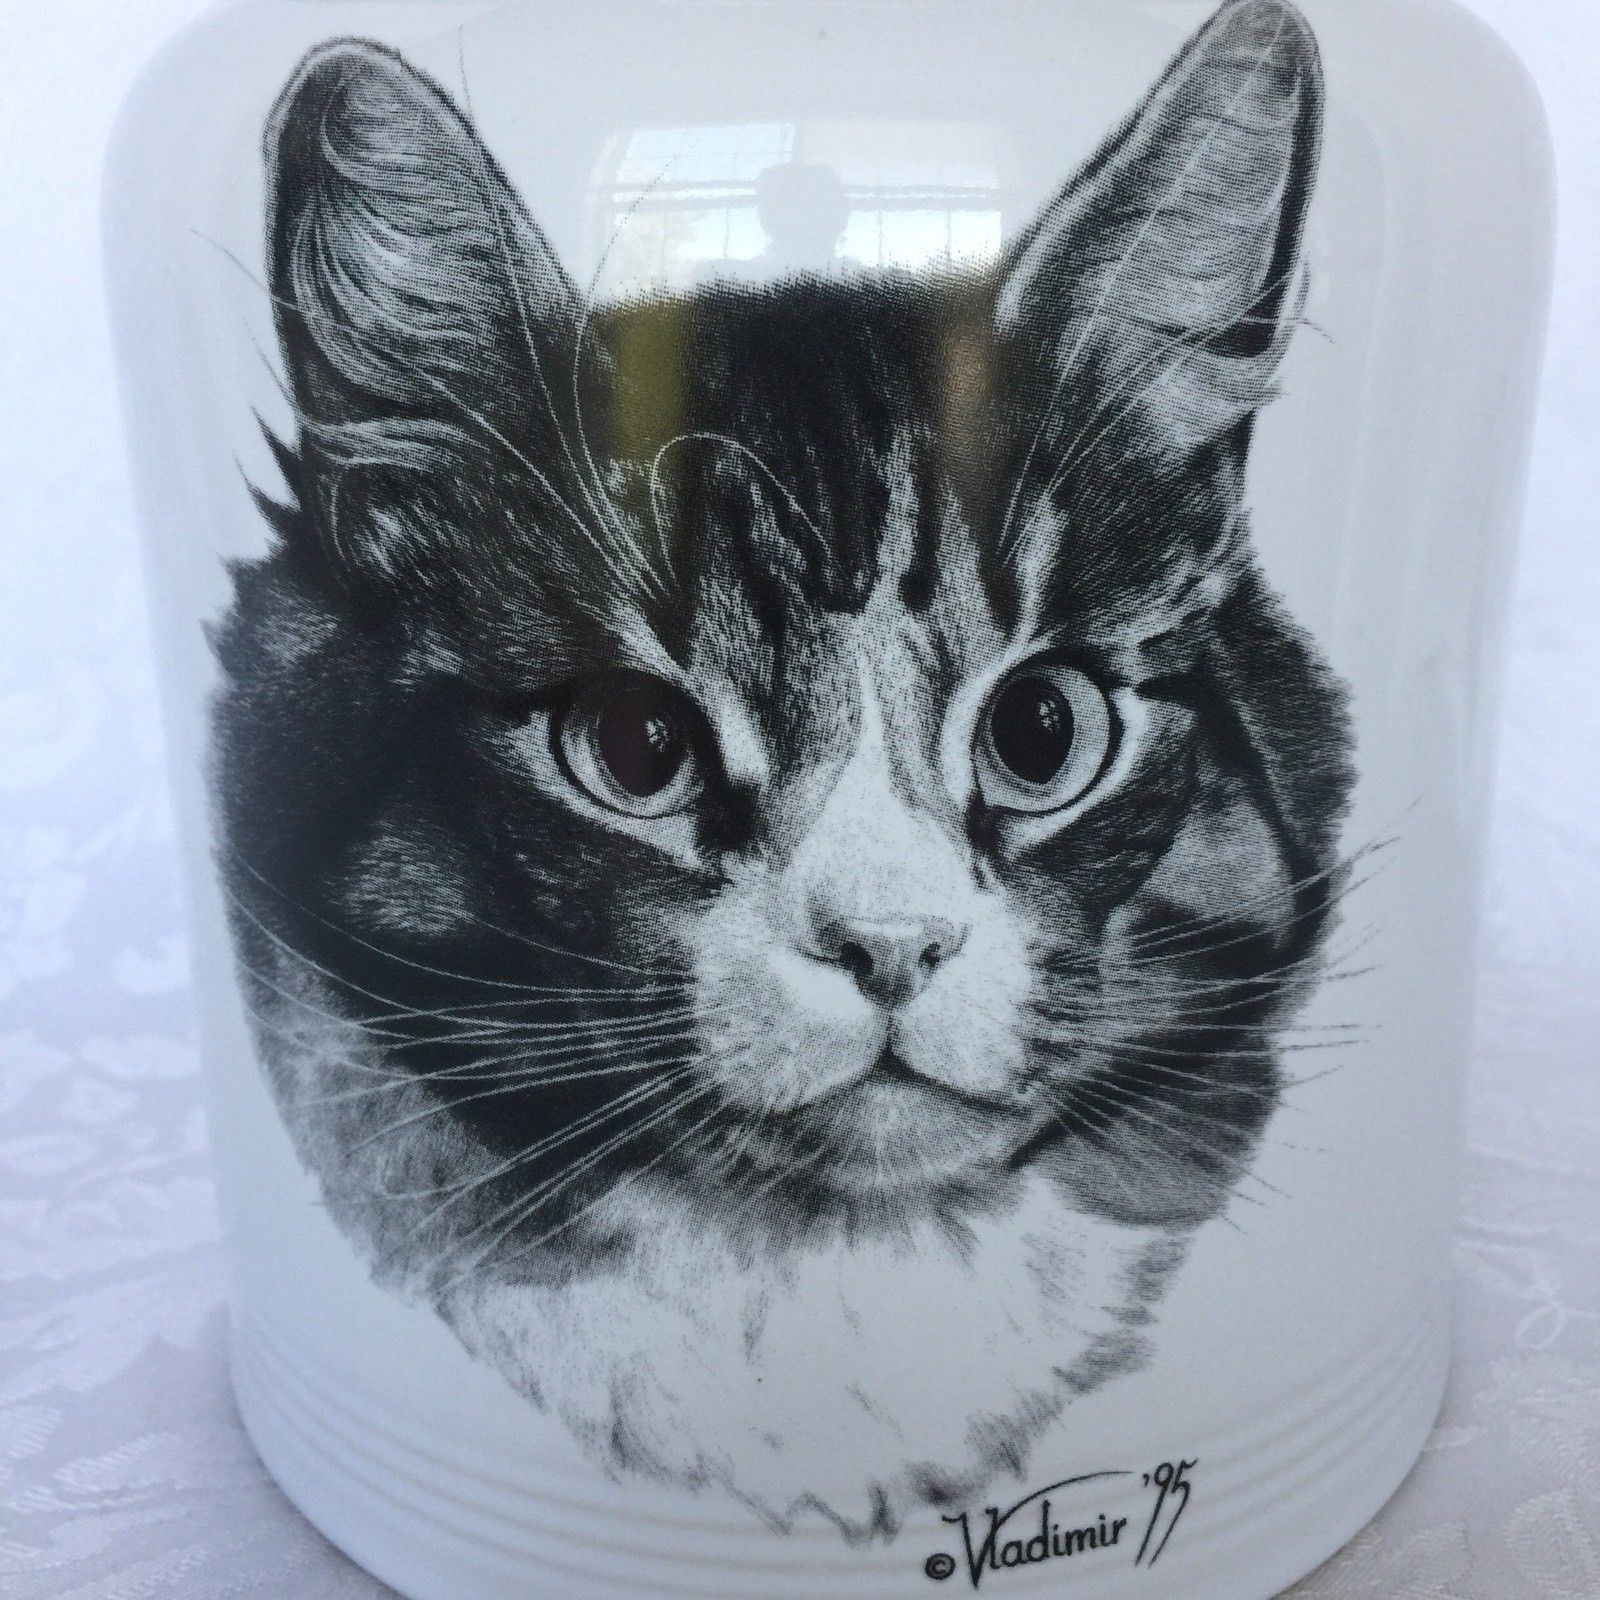 Cookie Jar Maine Interesting Rosalinde Vladimir Tzenov Cat Maine Coon Canister Treat Cookie Jar Review